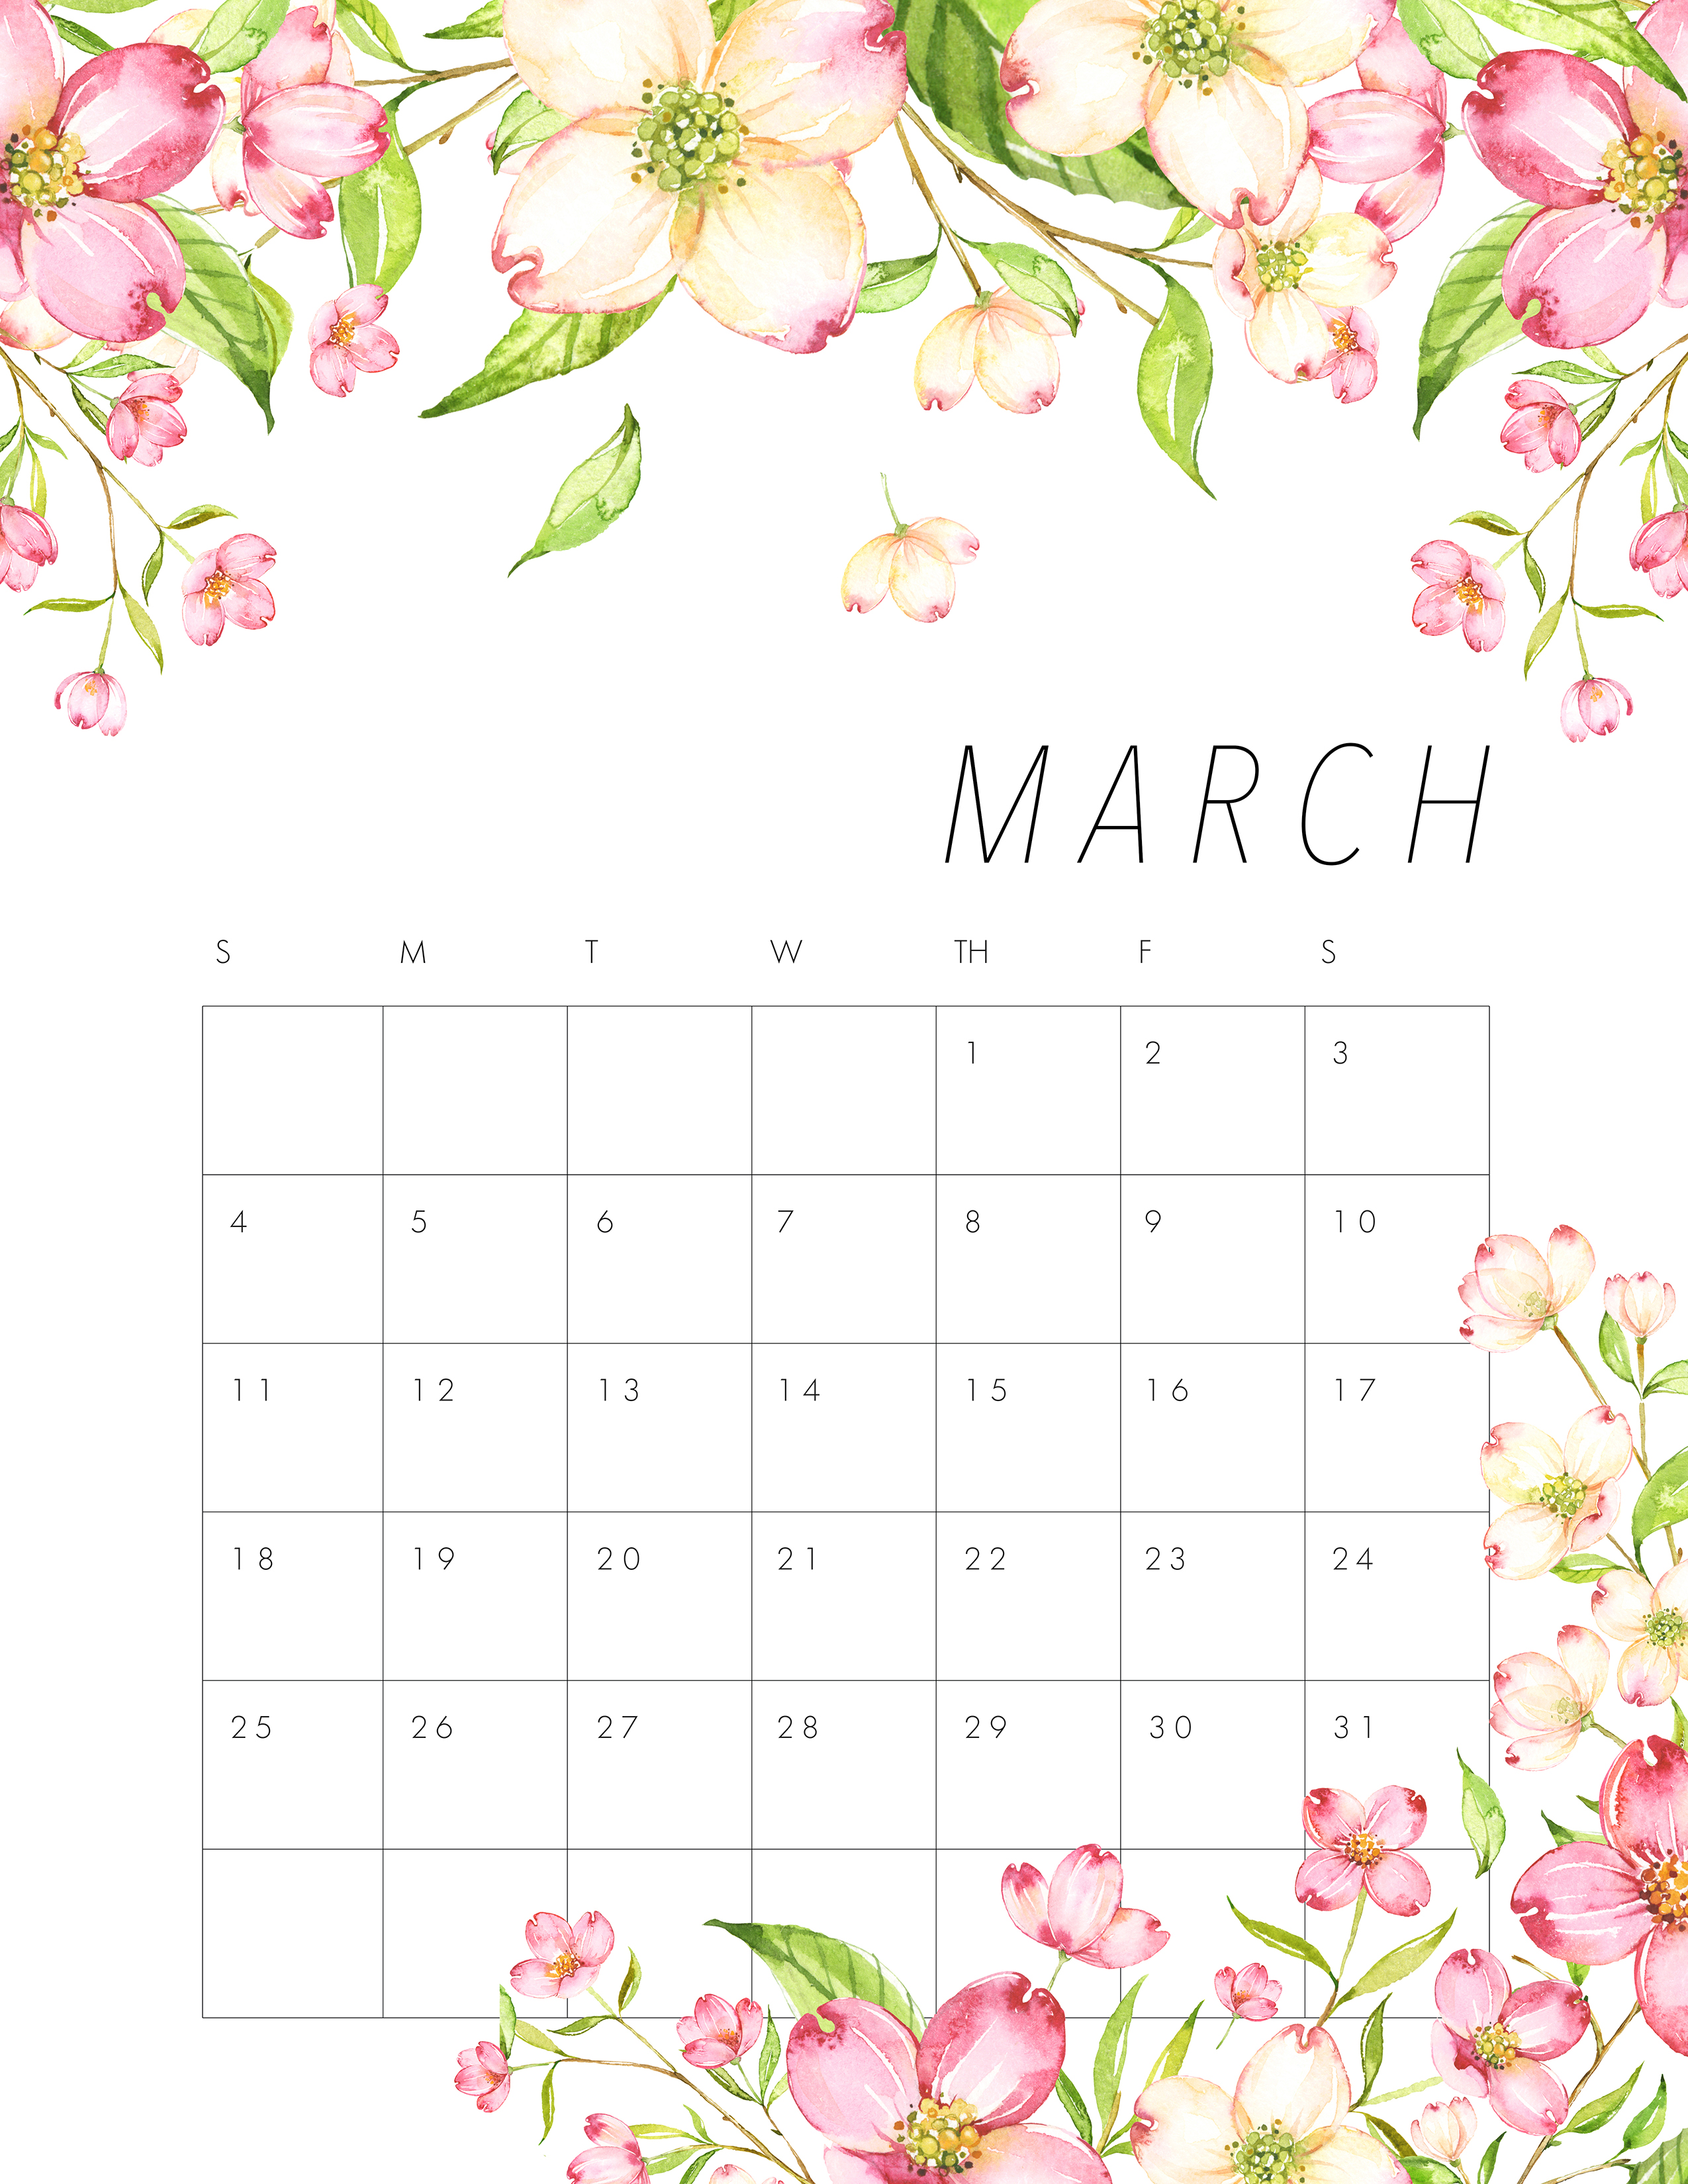 Floral Wall Calendar March 2019